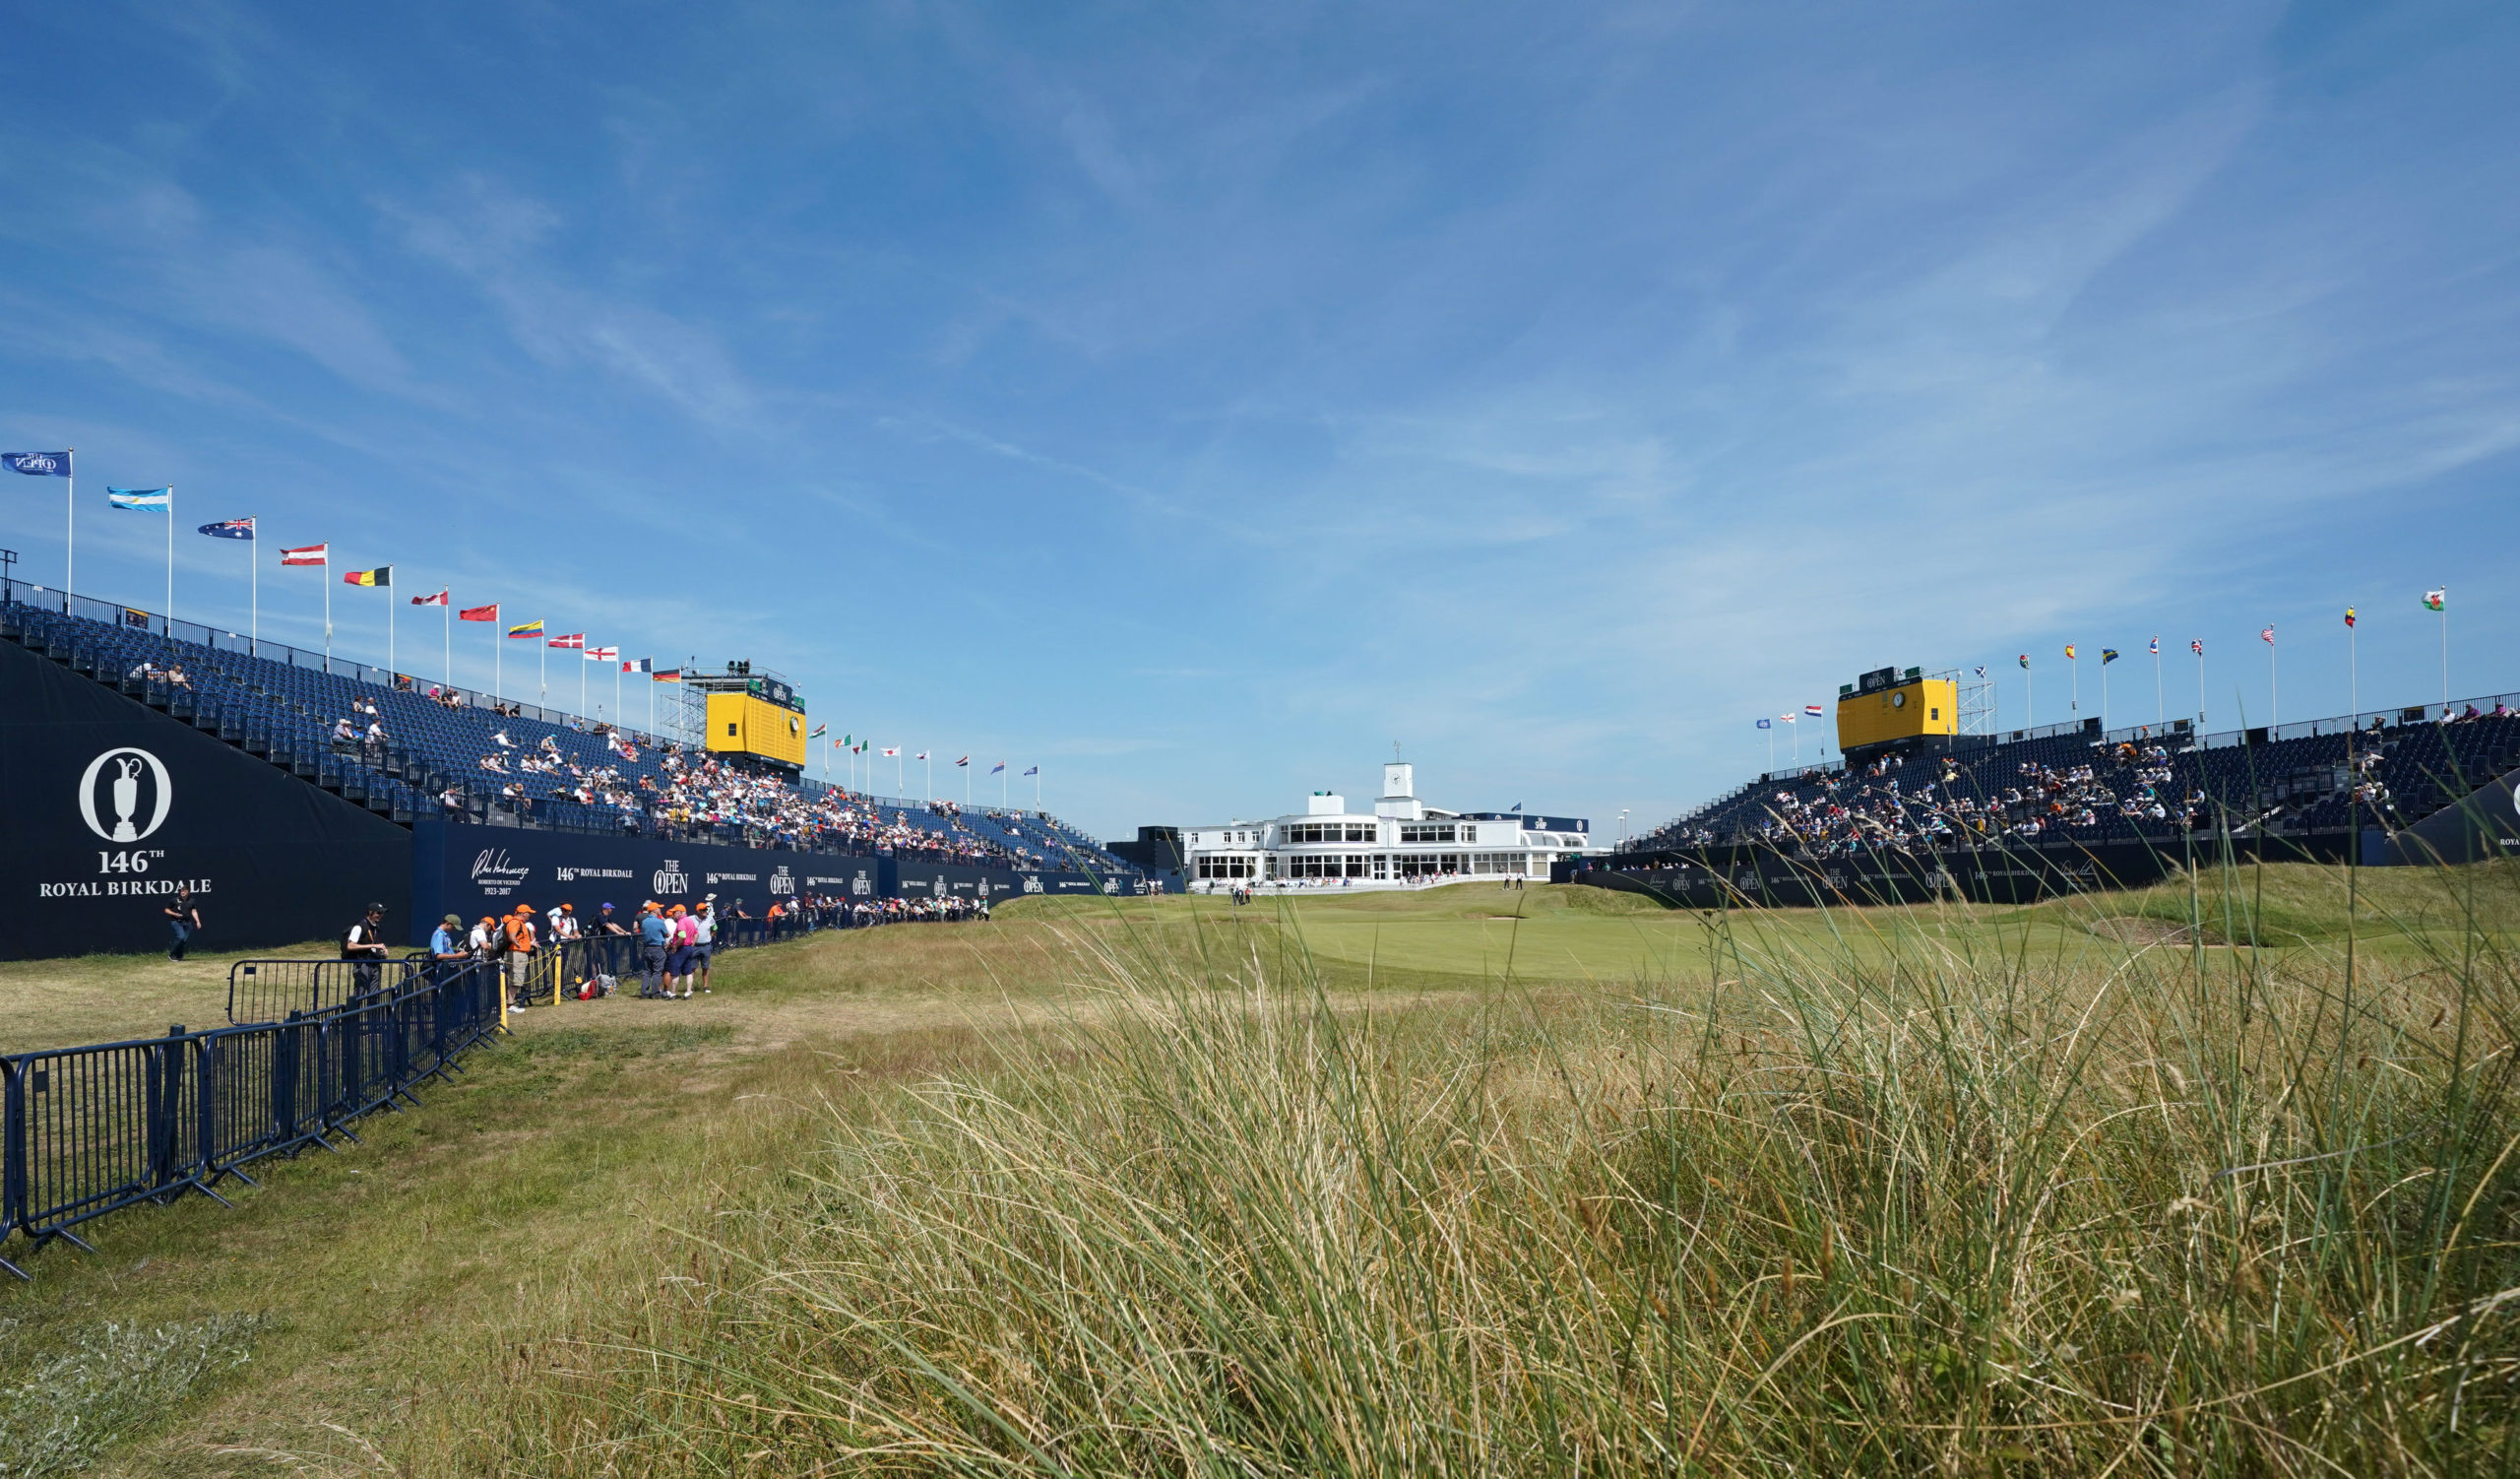 Royal Birkdale Golf Club hosts the Amateur this week.